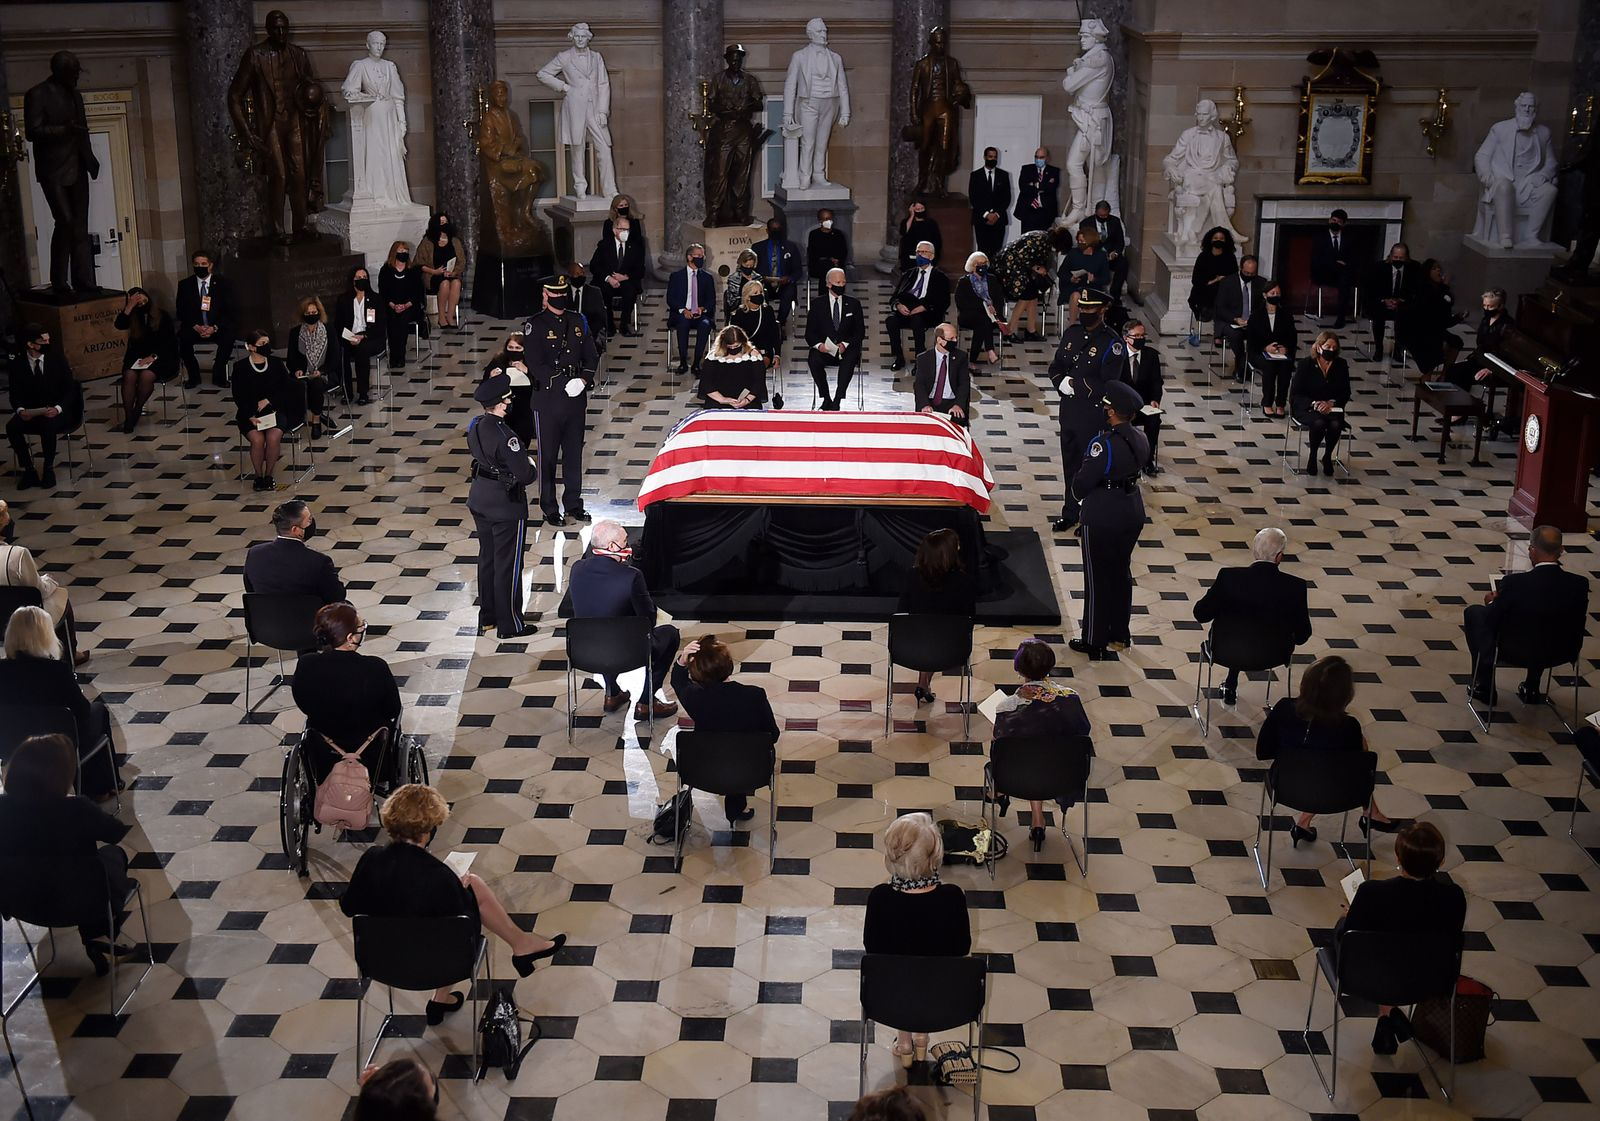 Late Justice Ginsburg lies in state, Washington, USA - 25 Sep 2020